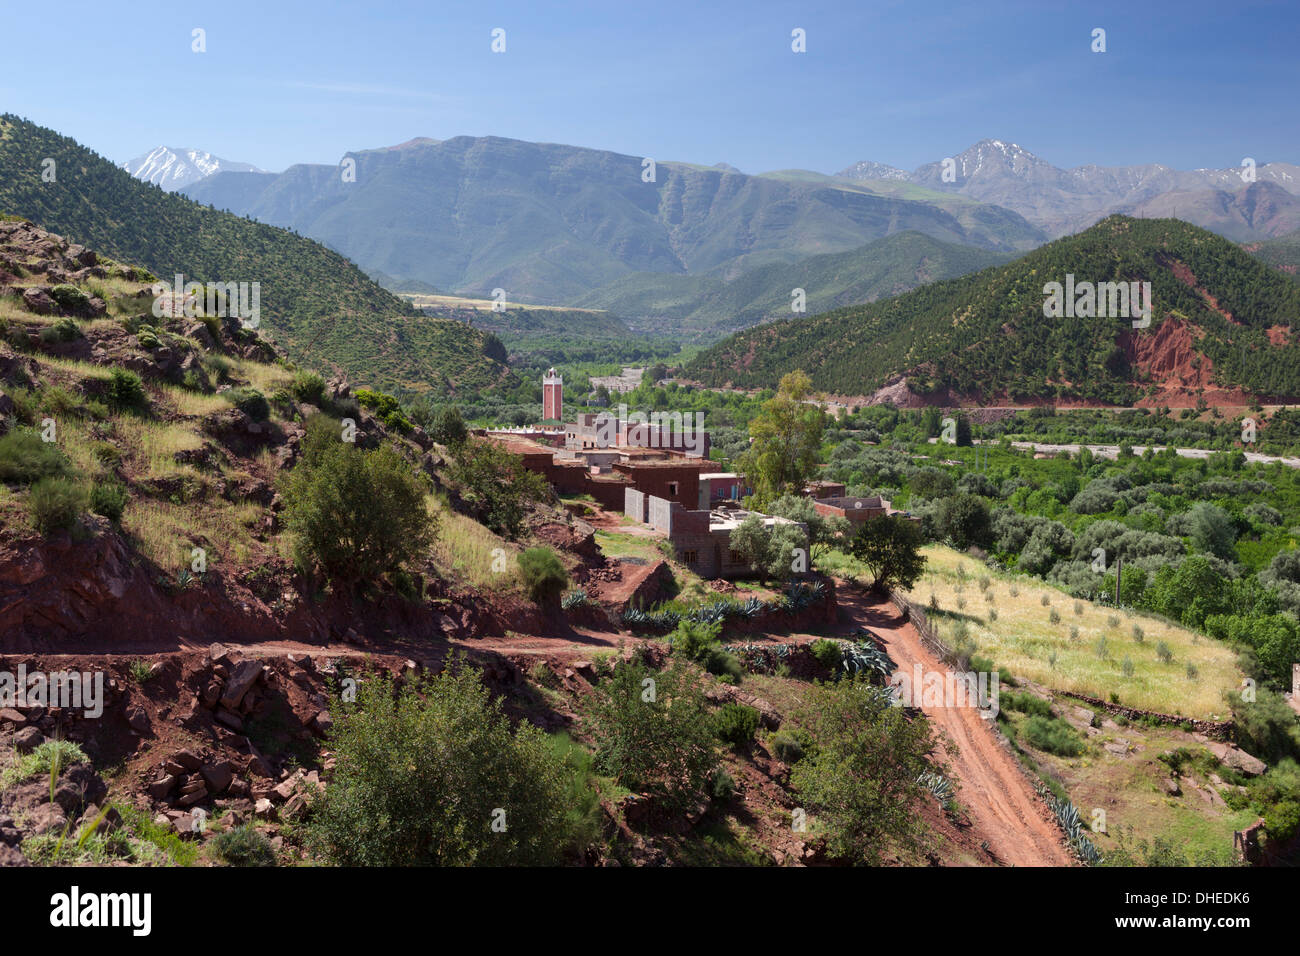 Berber village, Ourika Valley, Atlas Mountains, Morocco, North Africa, Africa - Stock Image